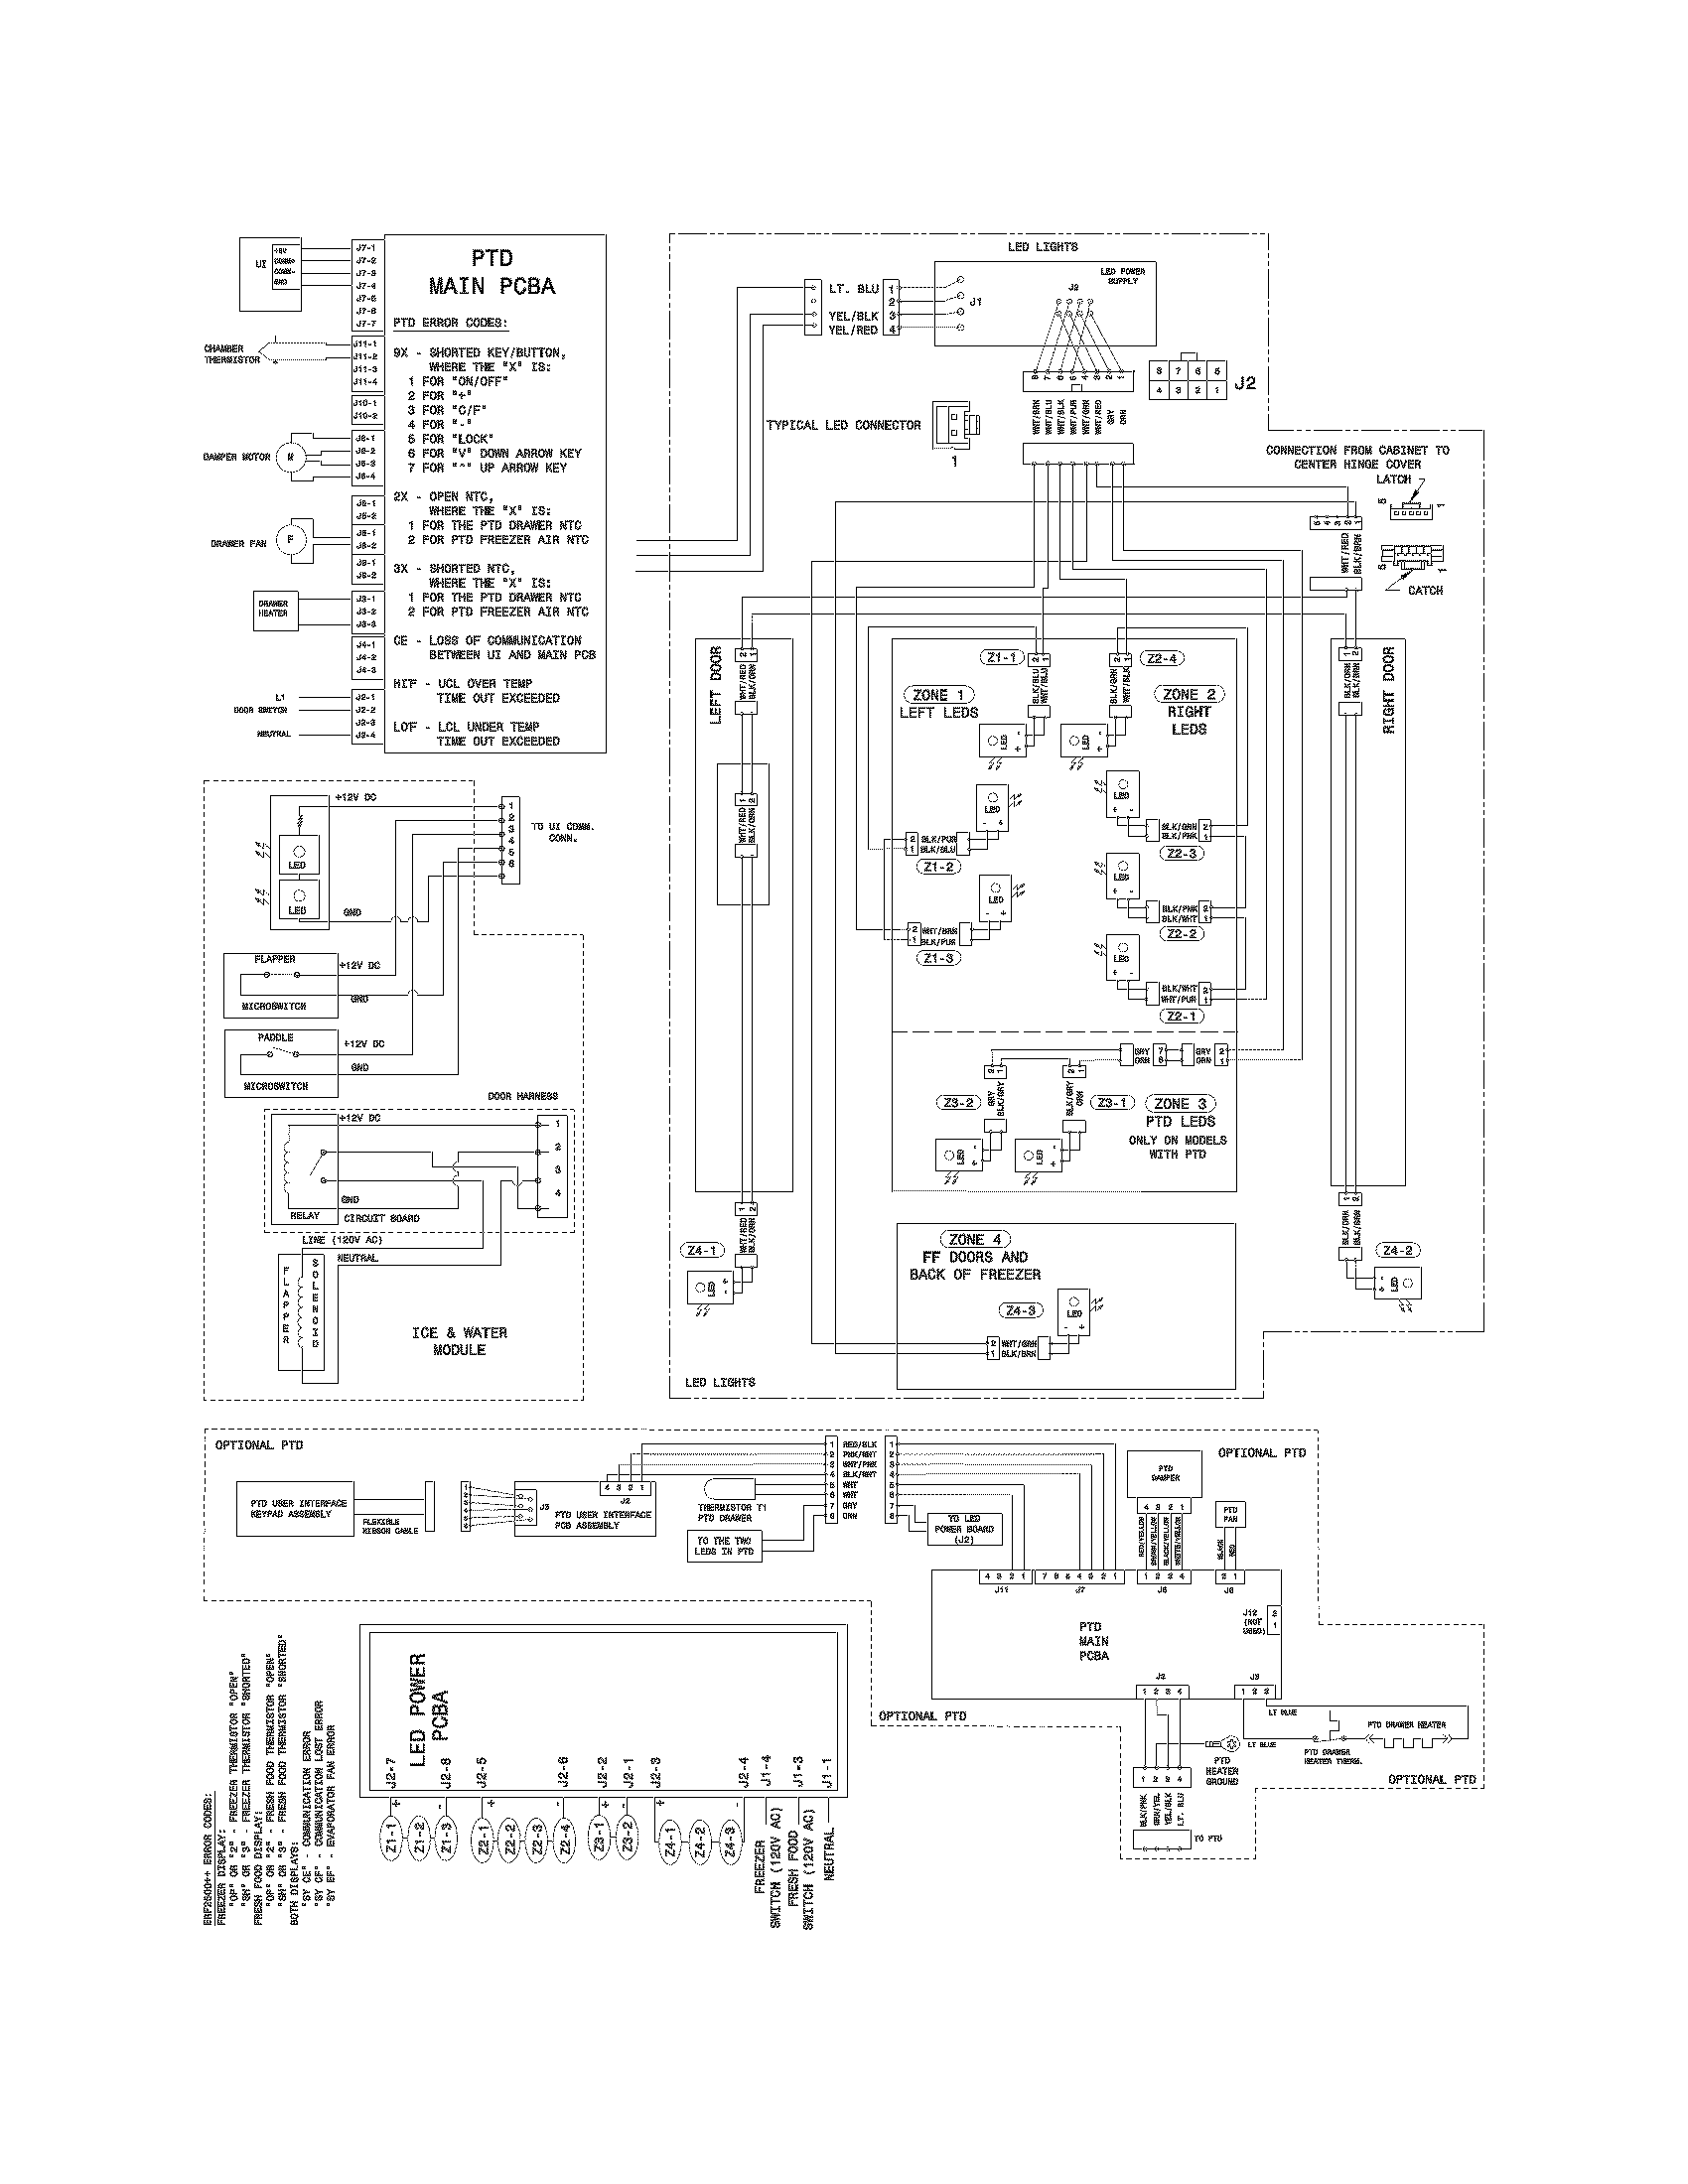 R1303093 00011?resize\=665%2C861 rexair wiring diagram pinout diagrams, snatch block diagrams Electrolux Vacuum Parts Diagram at cos-gaming.co